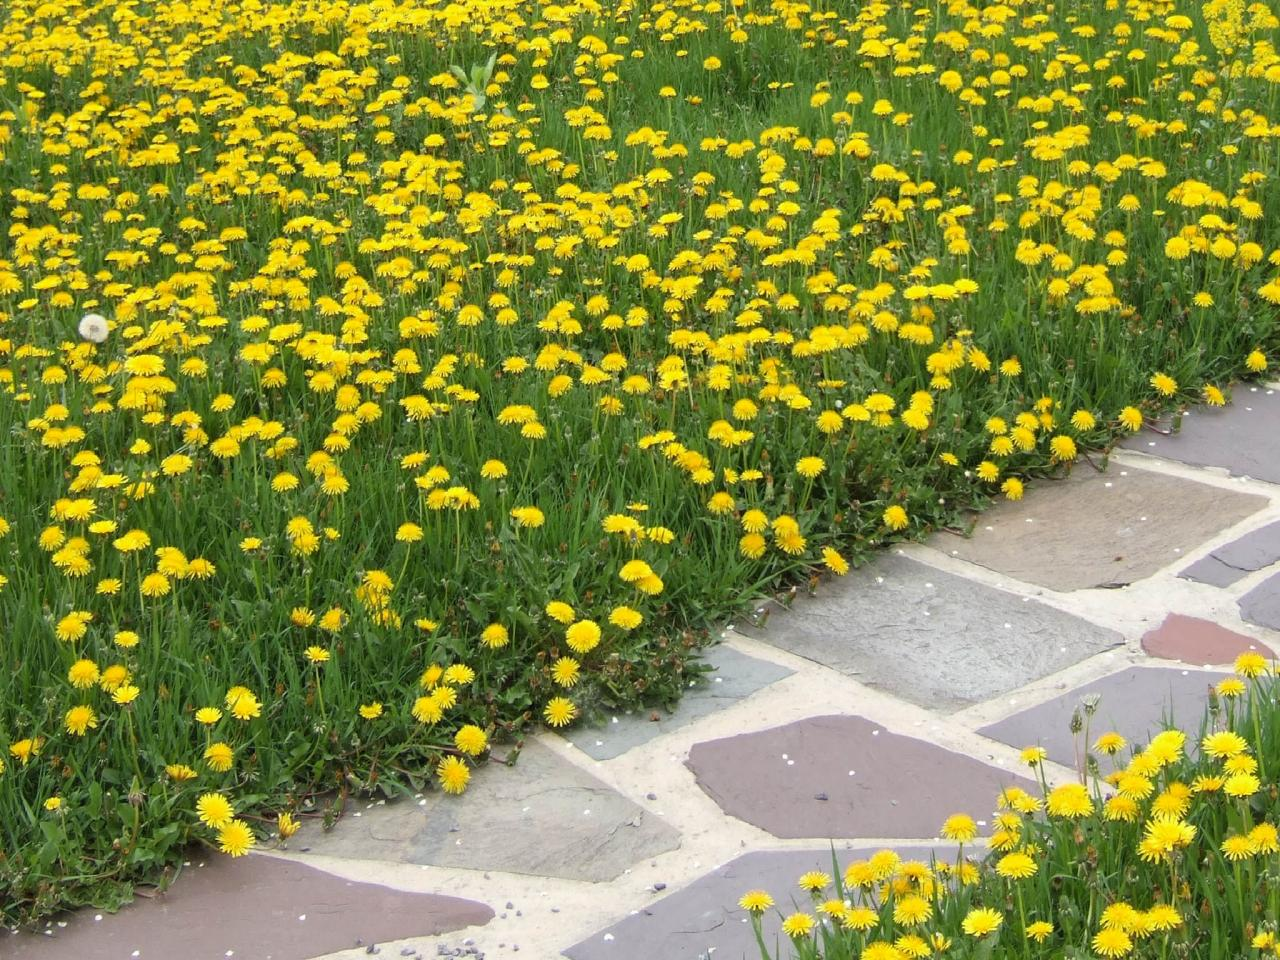 how to kill dandelions in lawn naturally